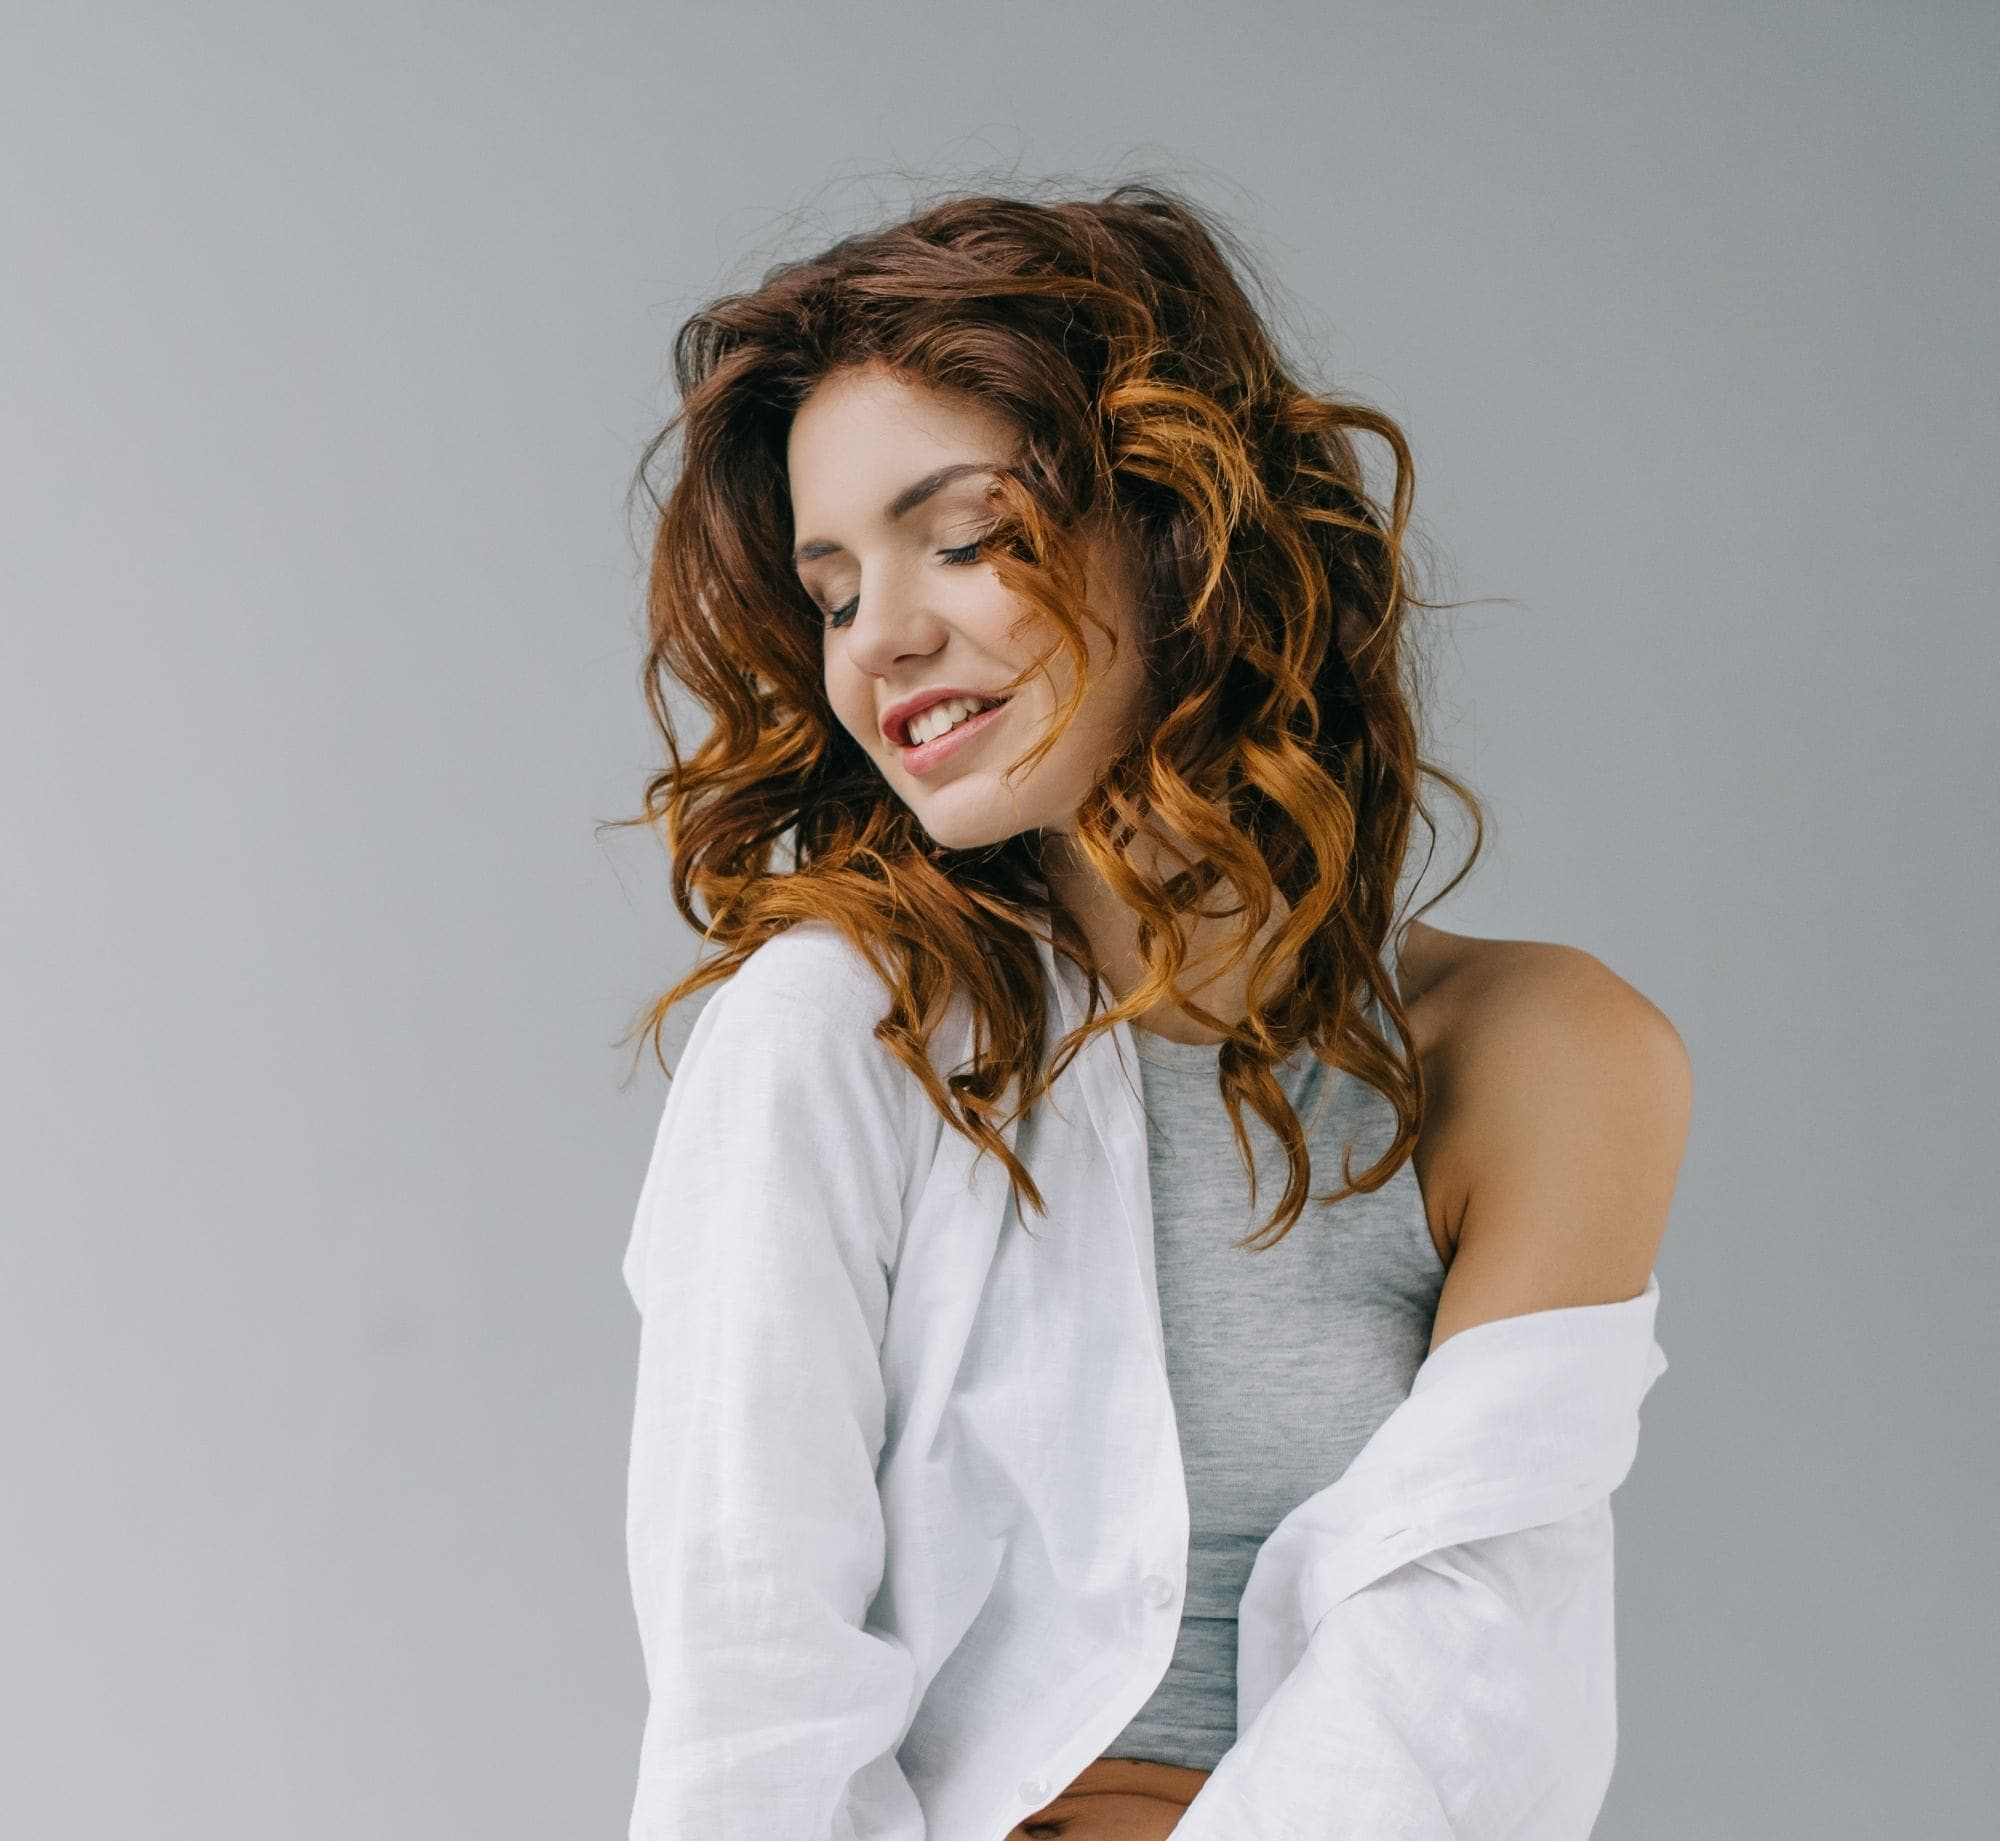 Woman with curly hair with brown highlights